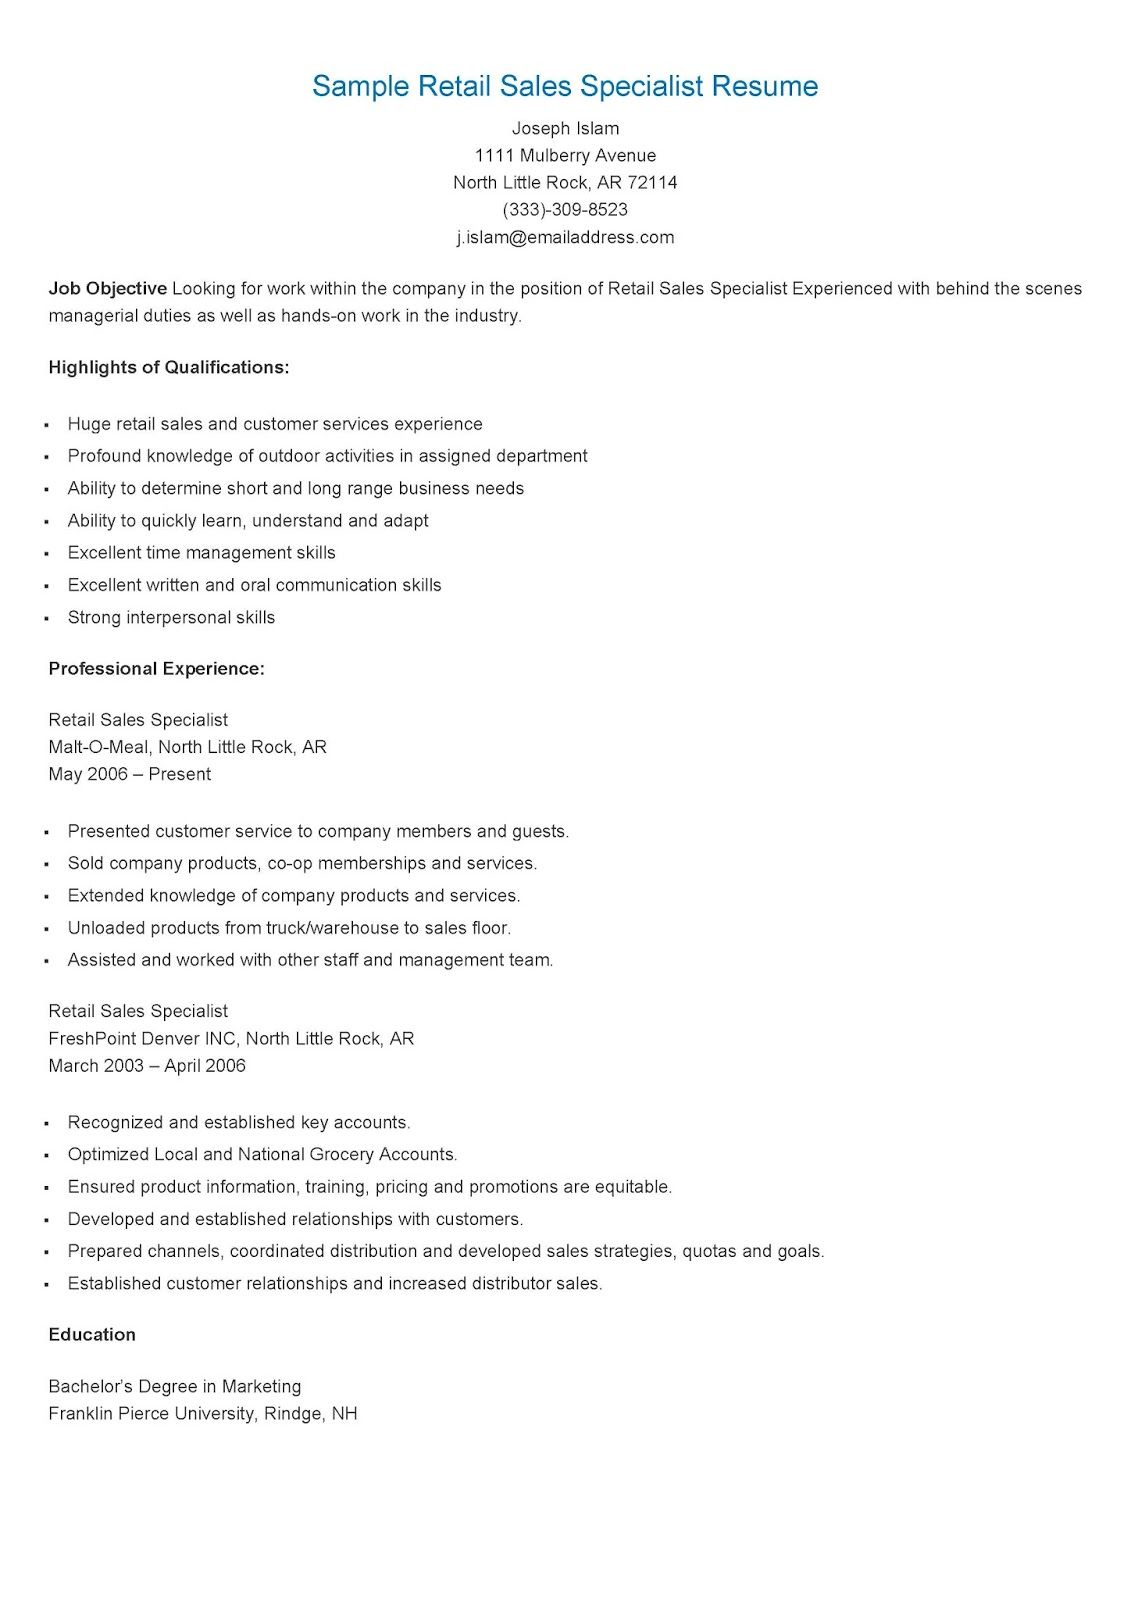 Sample Retail Sales Specialist Resume Resame Pinterest